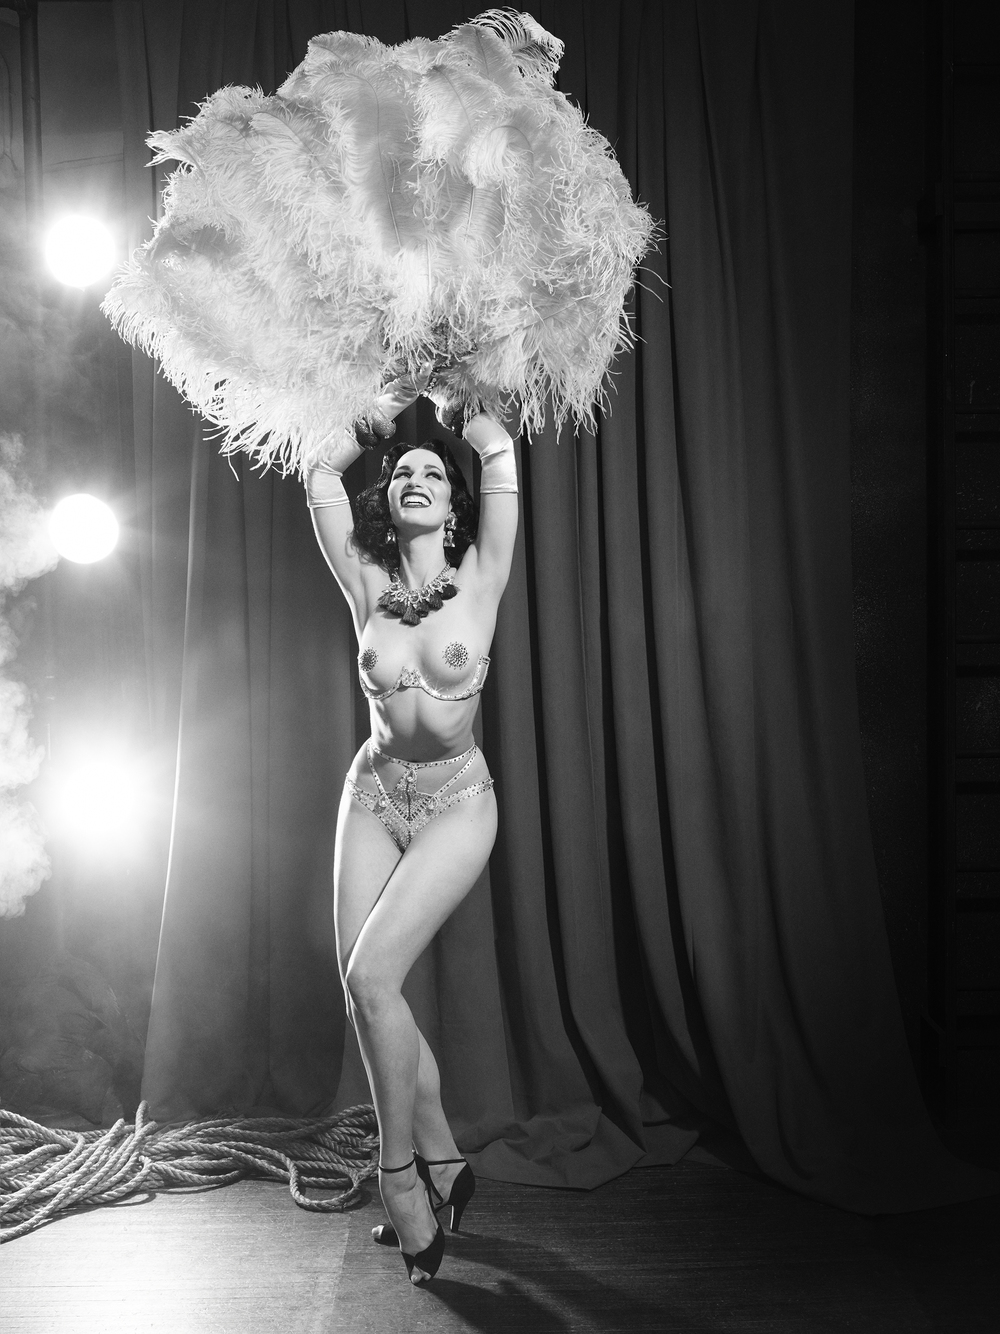 13_Burlesque_Dancer_024_v1.jpg